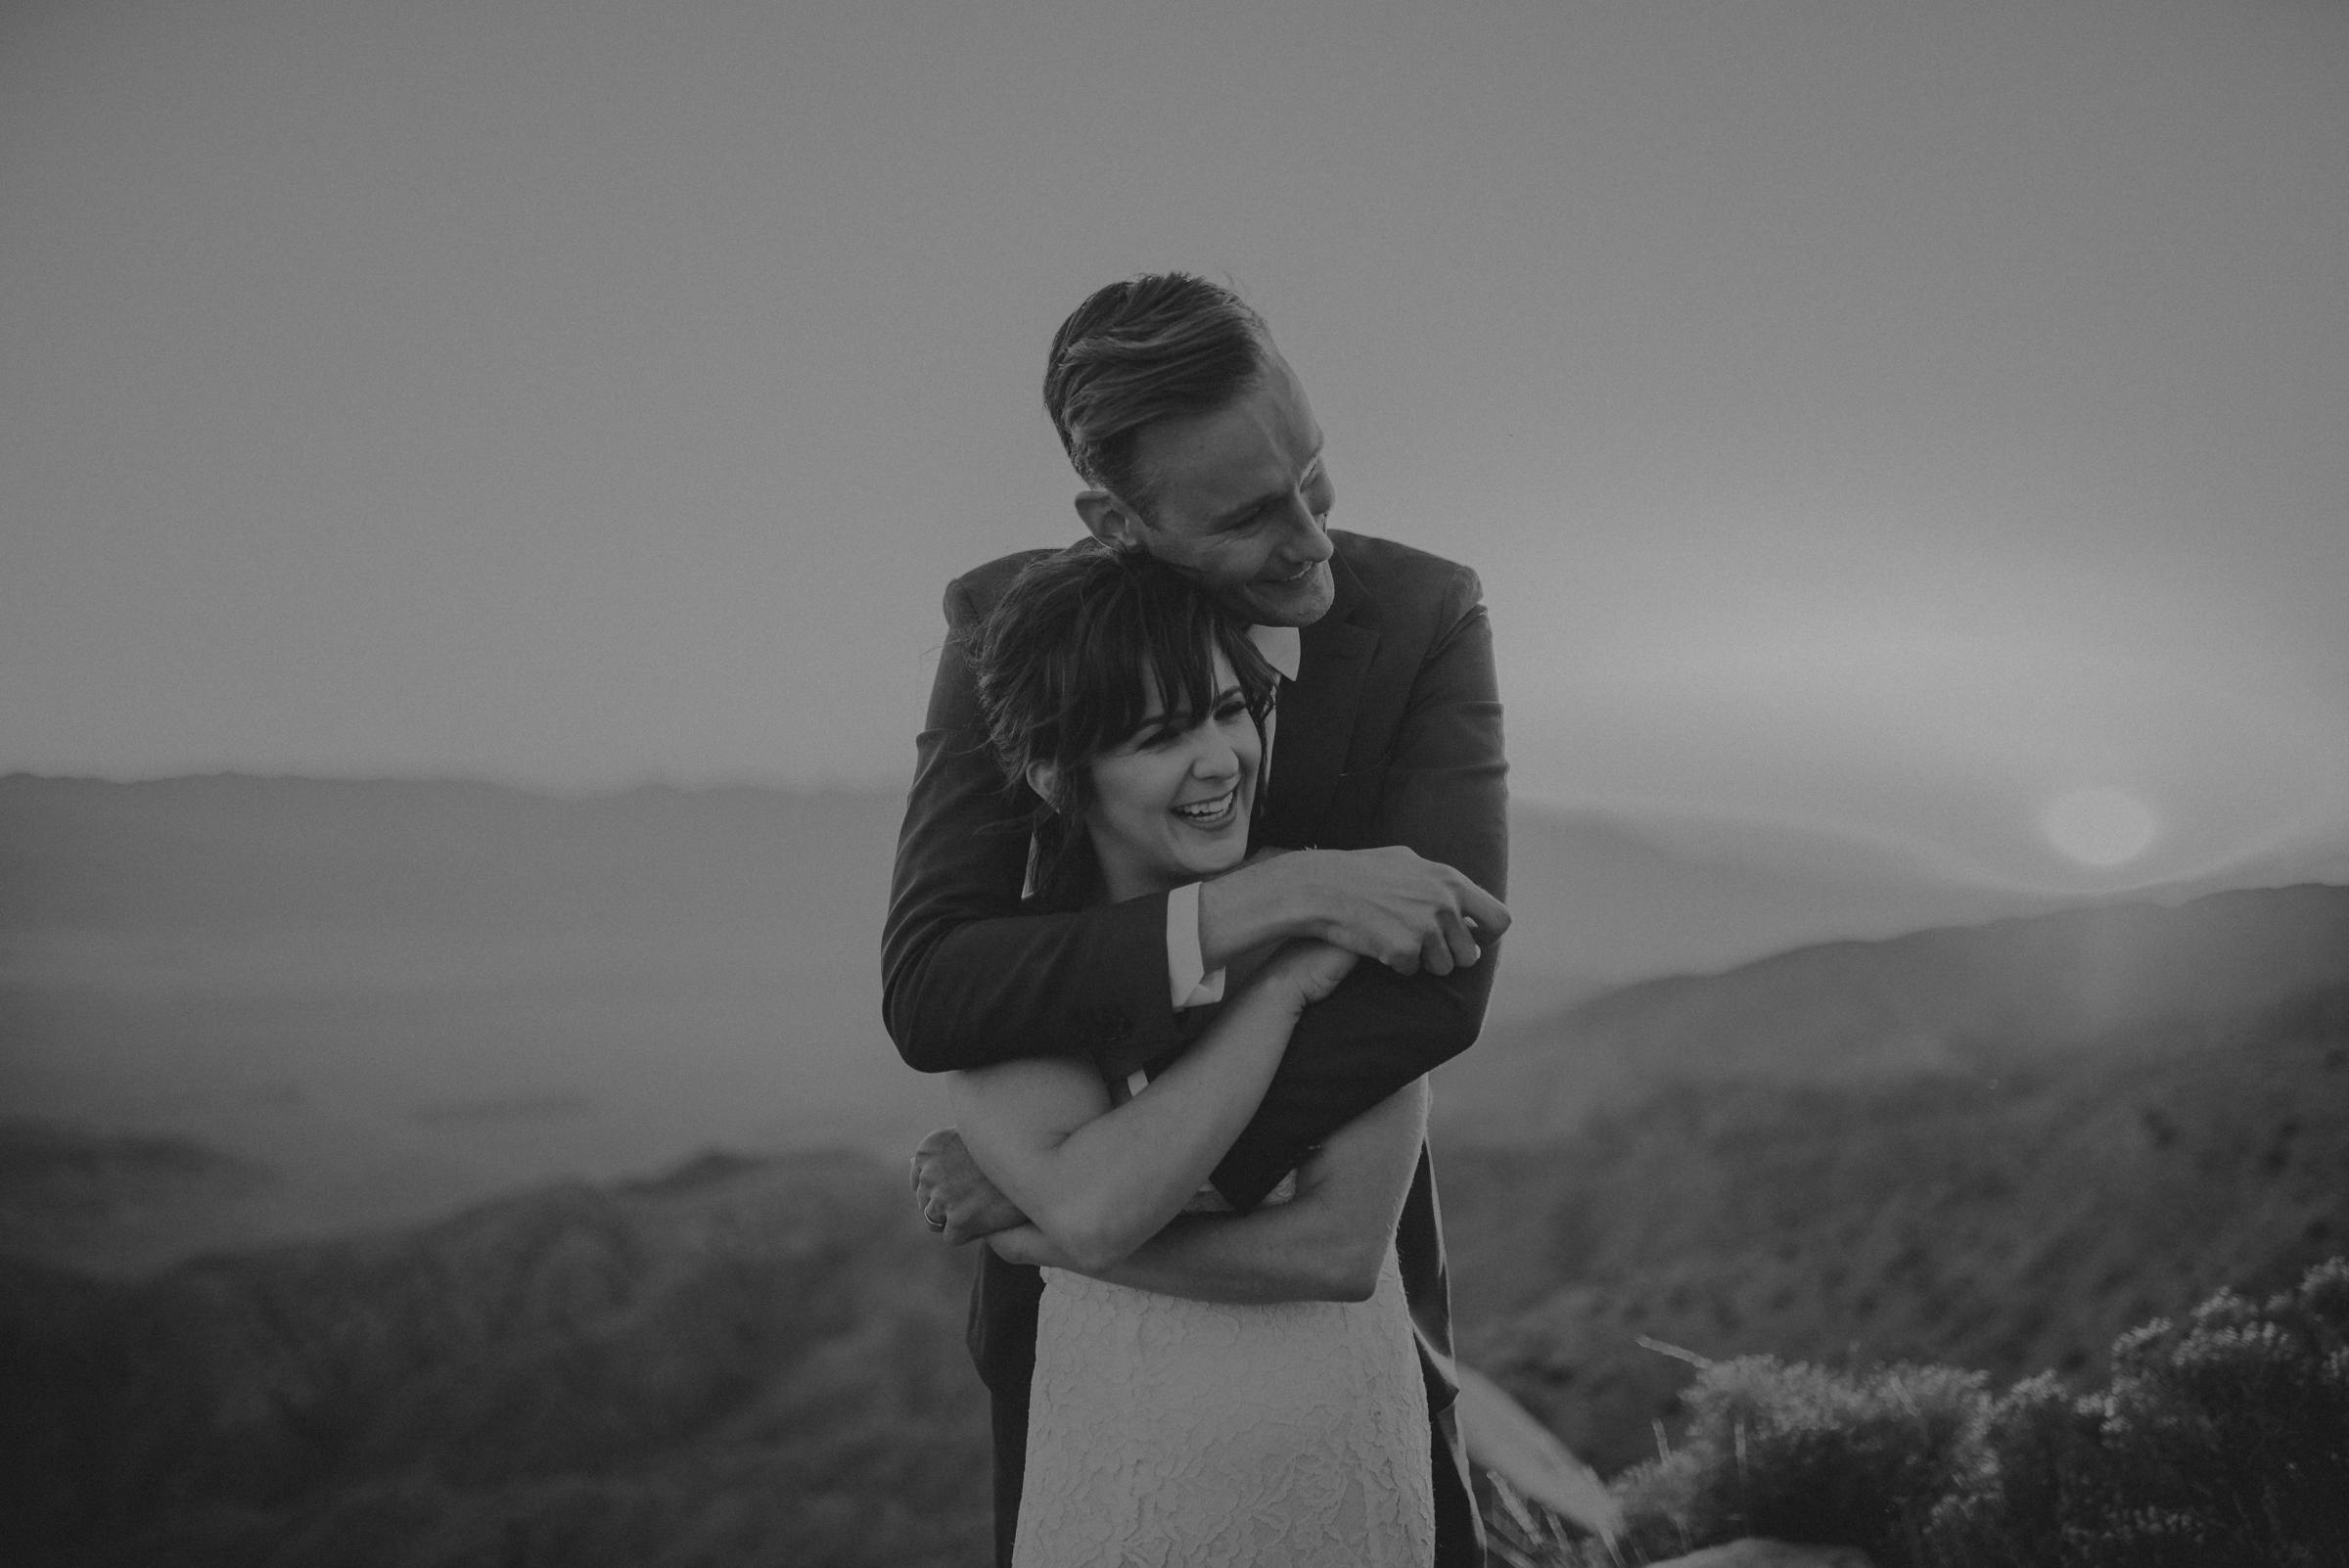 Joshua Tree Elopement - Los Angeles Wedding Photographers - IsaiahAndTaylor.com-113.jpg